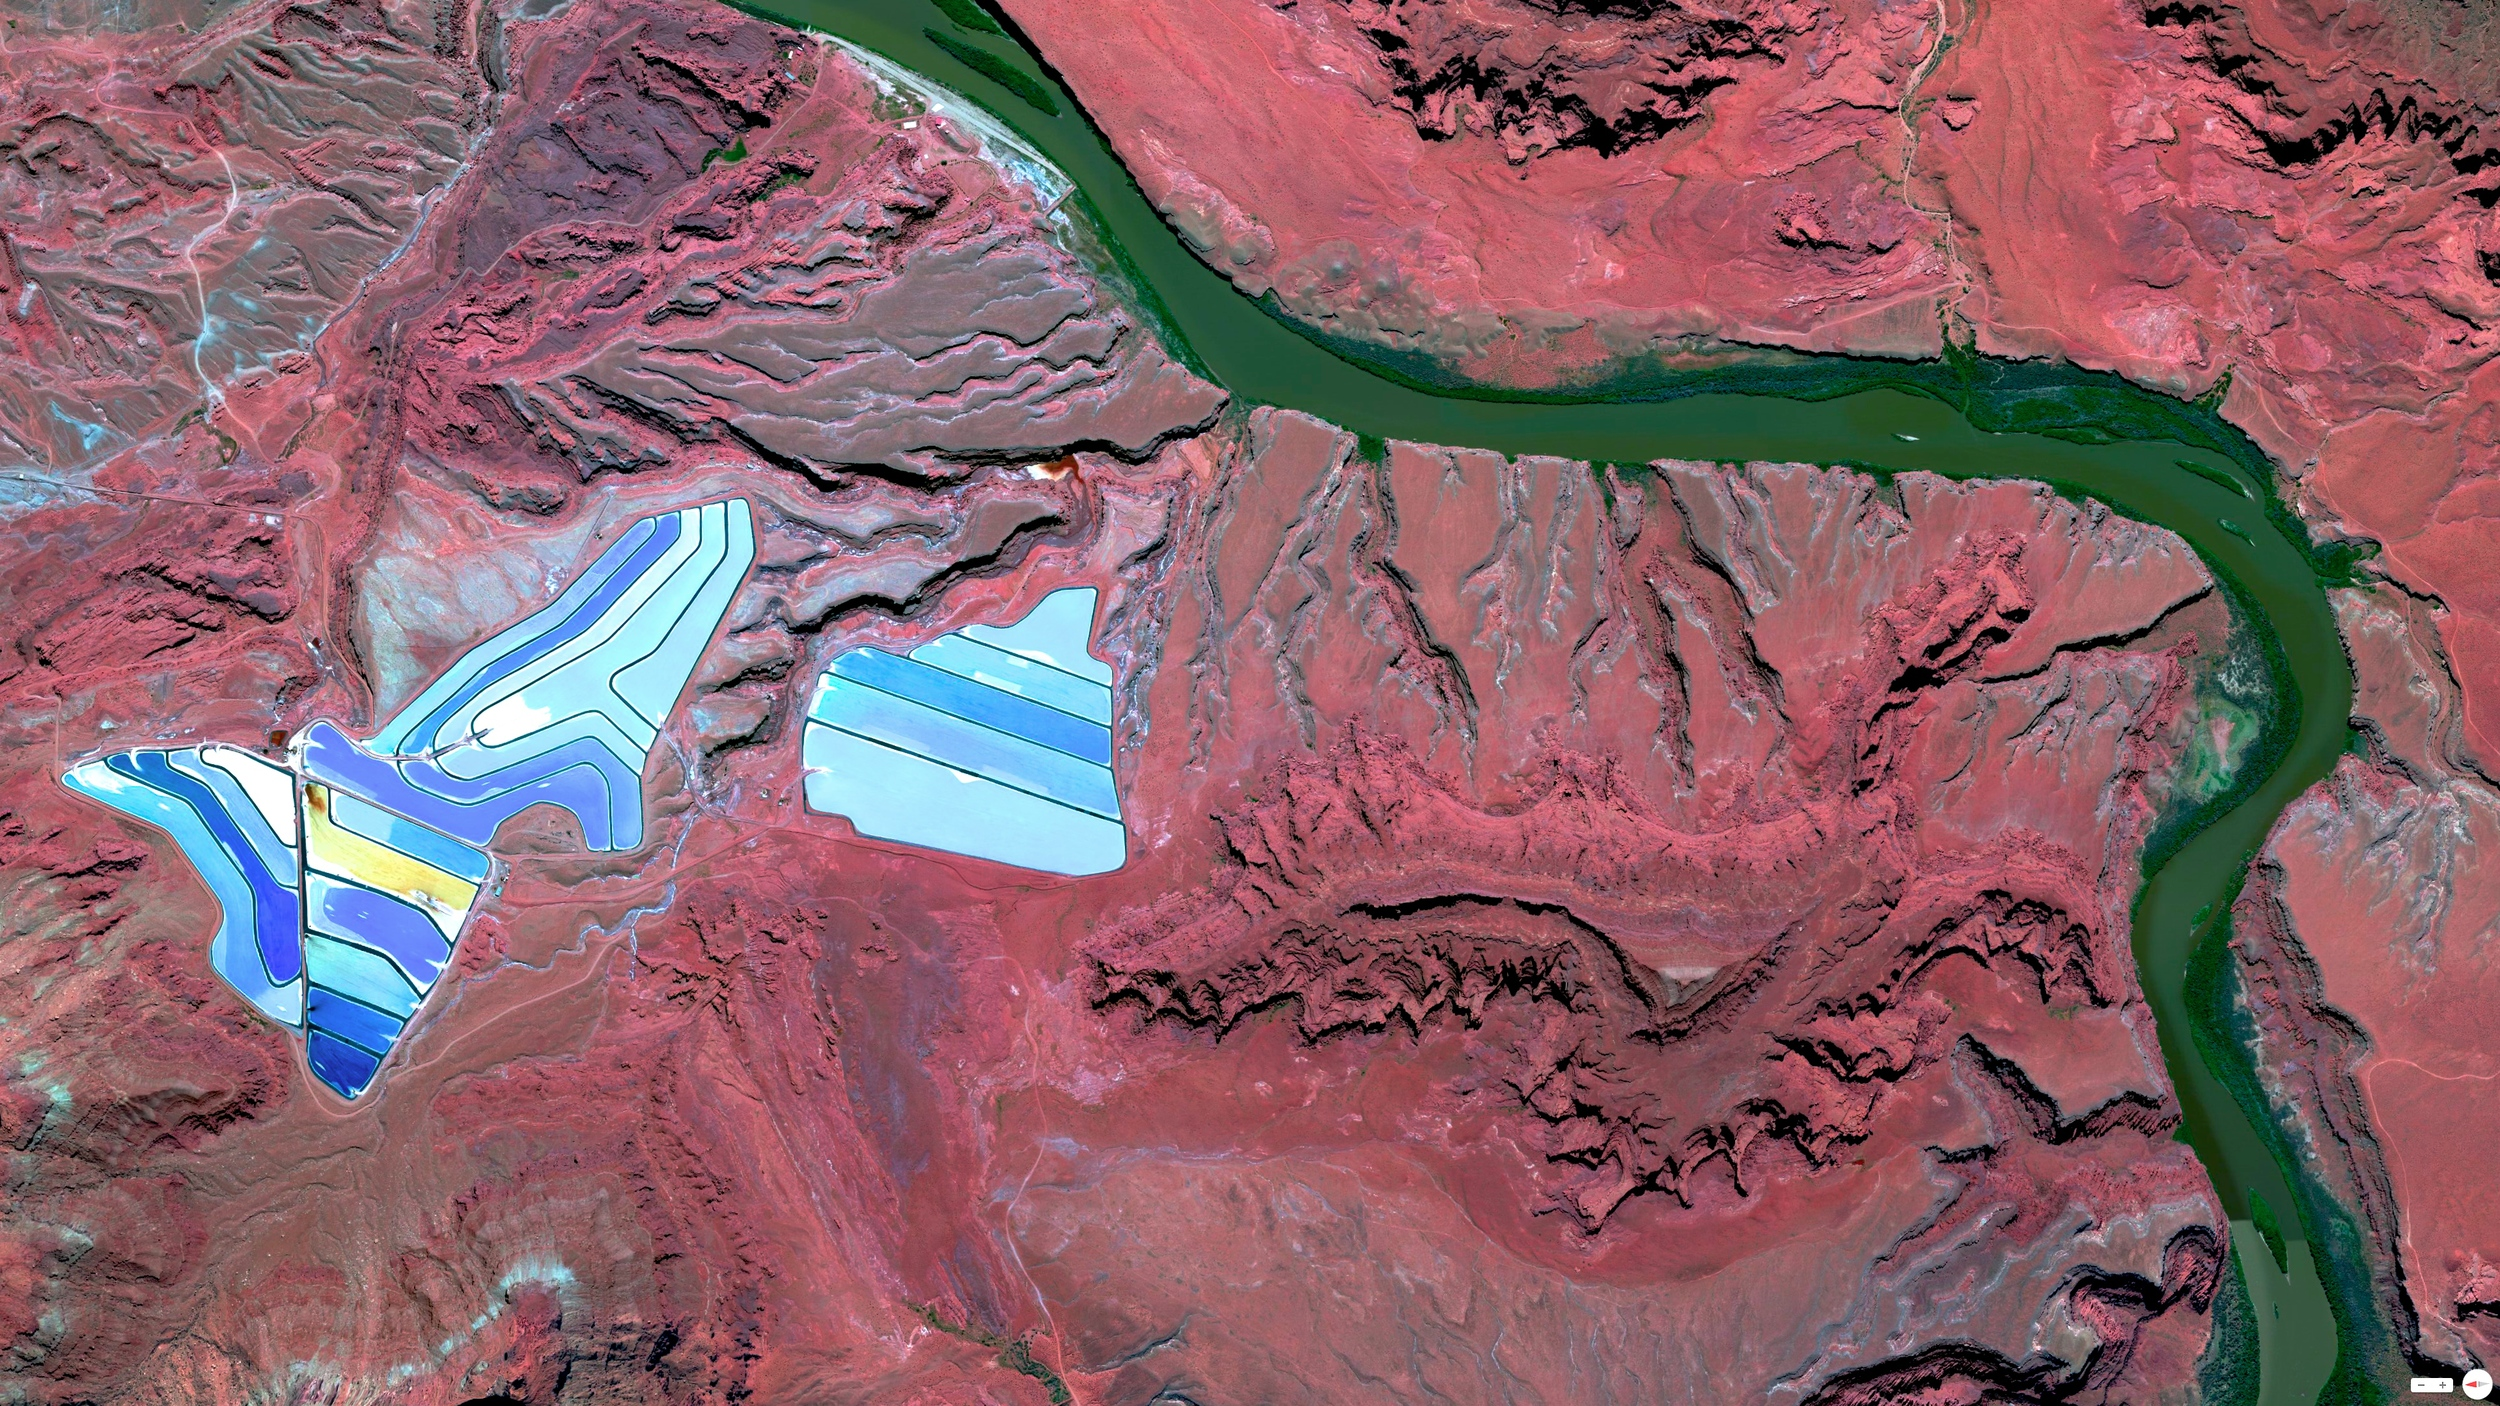 3/9/2014    Settling ponds of Intrepid Potash mine   Moab, Utah  38°29'0.16″N 109°40'52.80″W